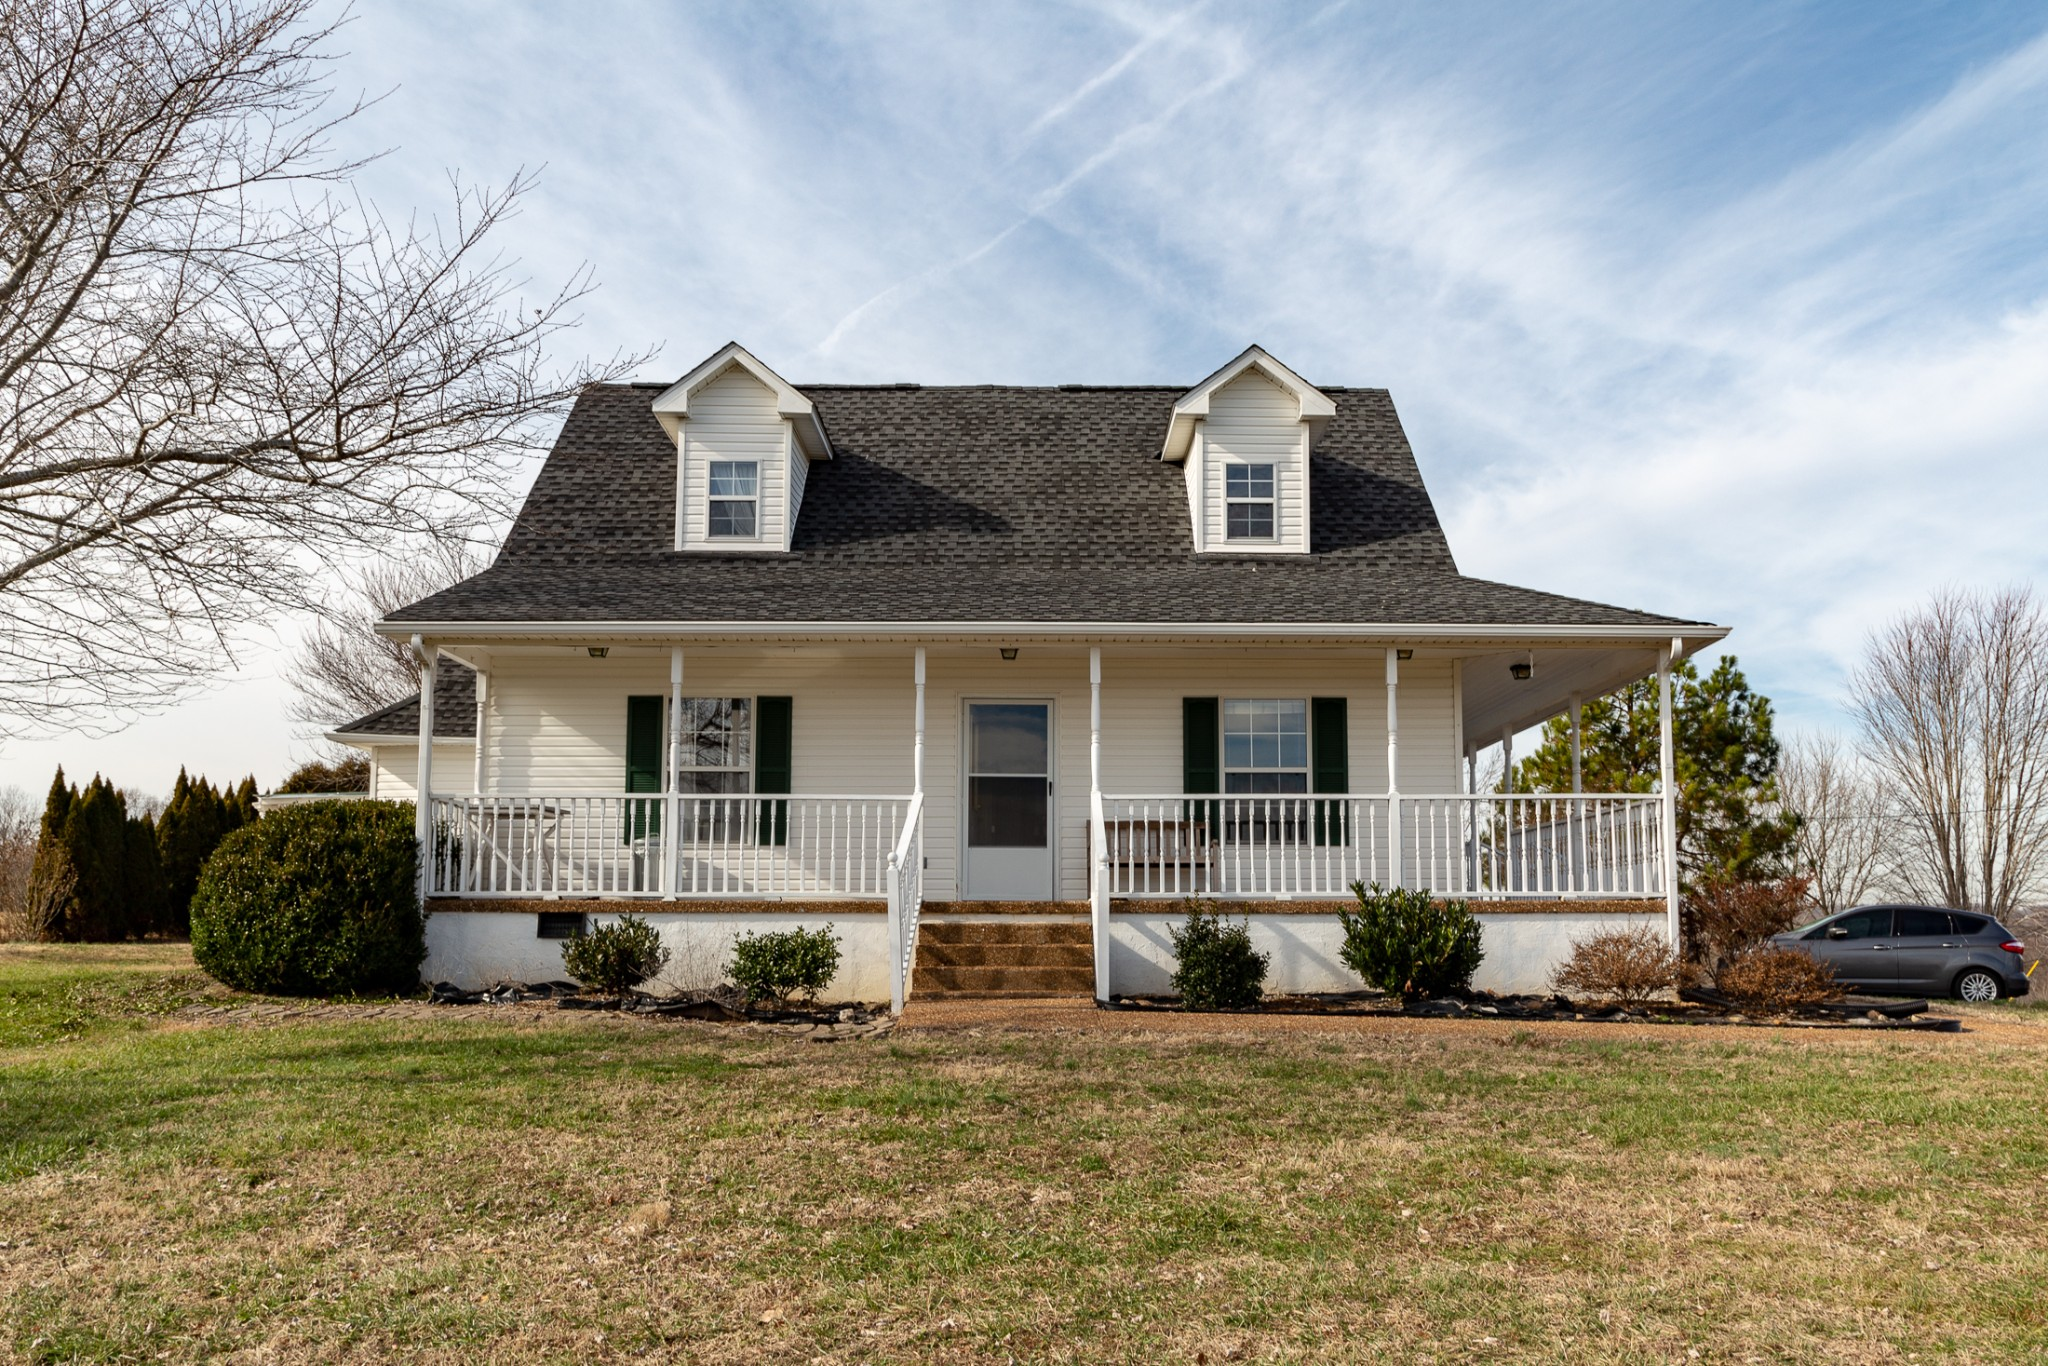 REMODELED 3 BEDROOM/3 BATH HOME ON 19.3 ACRES/60X40 HORSE BARN WITH SEPARATE FOALING STALL HAS WATER AND ELECTRICITY/4 SEPARATE PASTURES, FENCED AND CROSS FENCED/TRACTOR SHED/2 RUN-INS/STORAGE BUILDING/ADDITIONAL WATER SHUT OFF ISOLATION VALVES